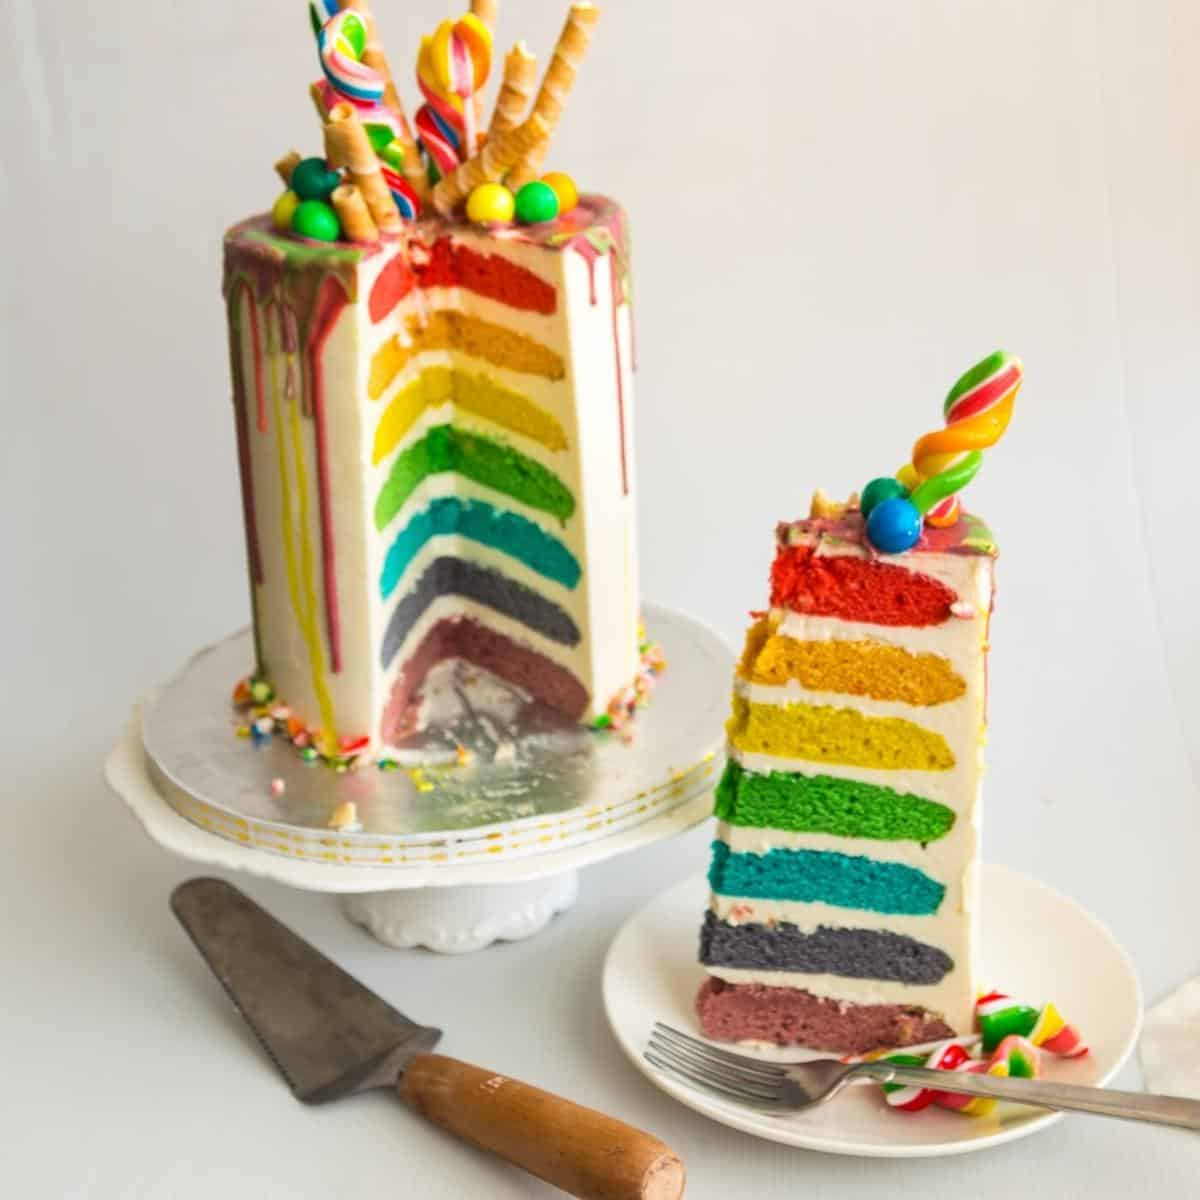 Rainbow cake topped with candy and wafer